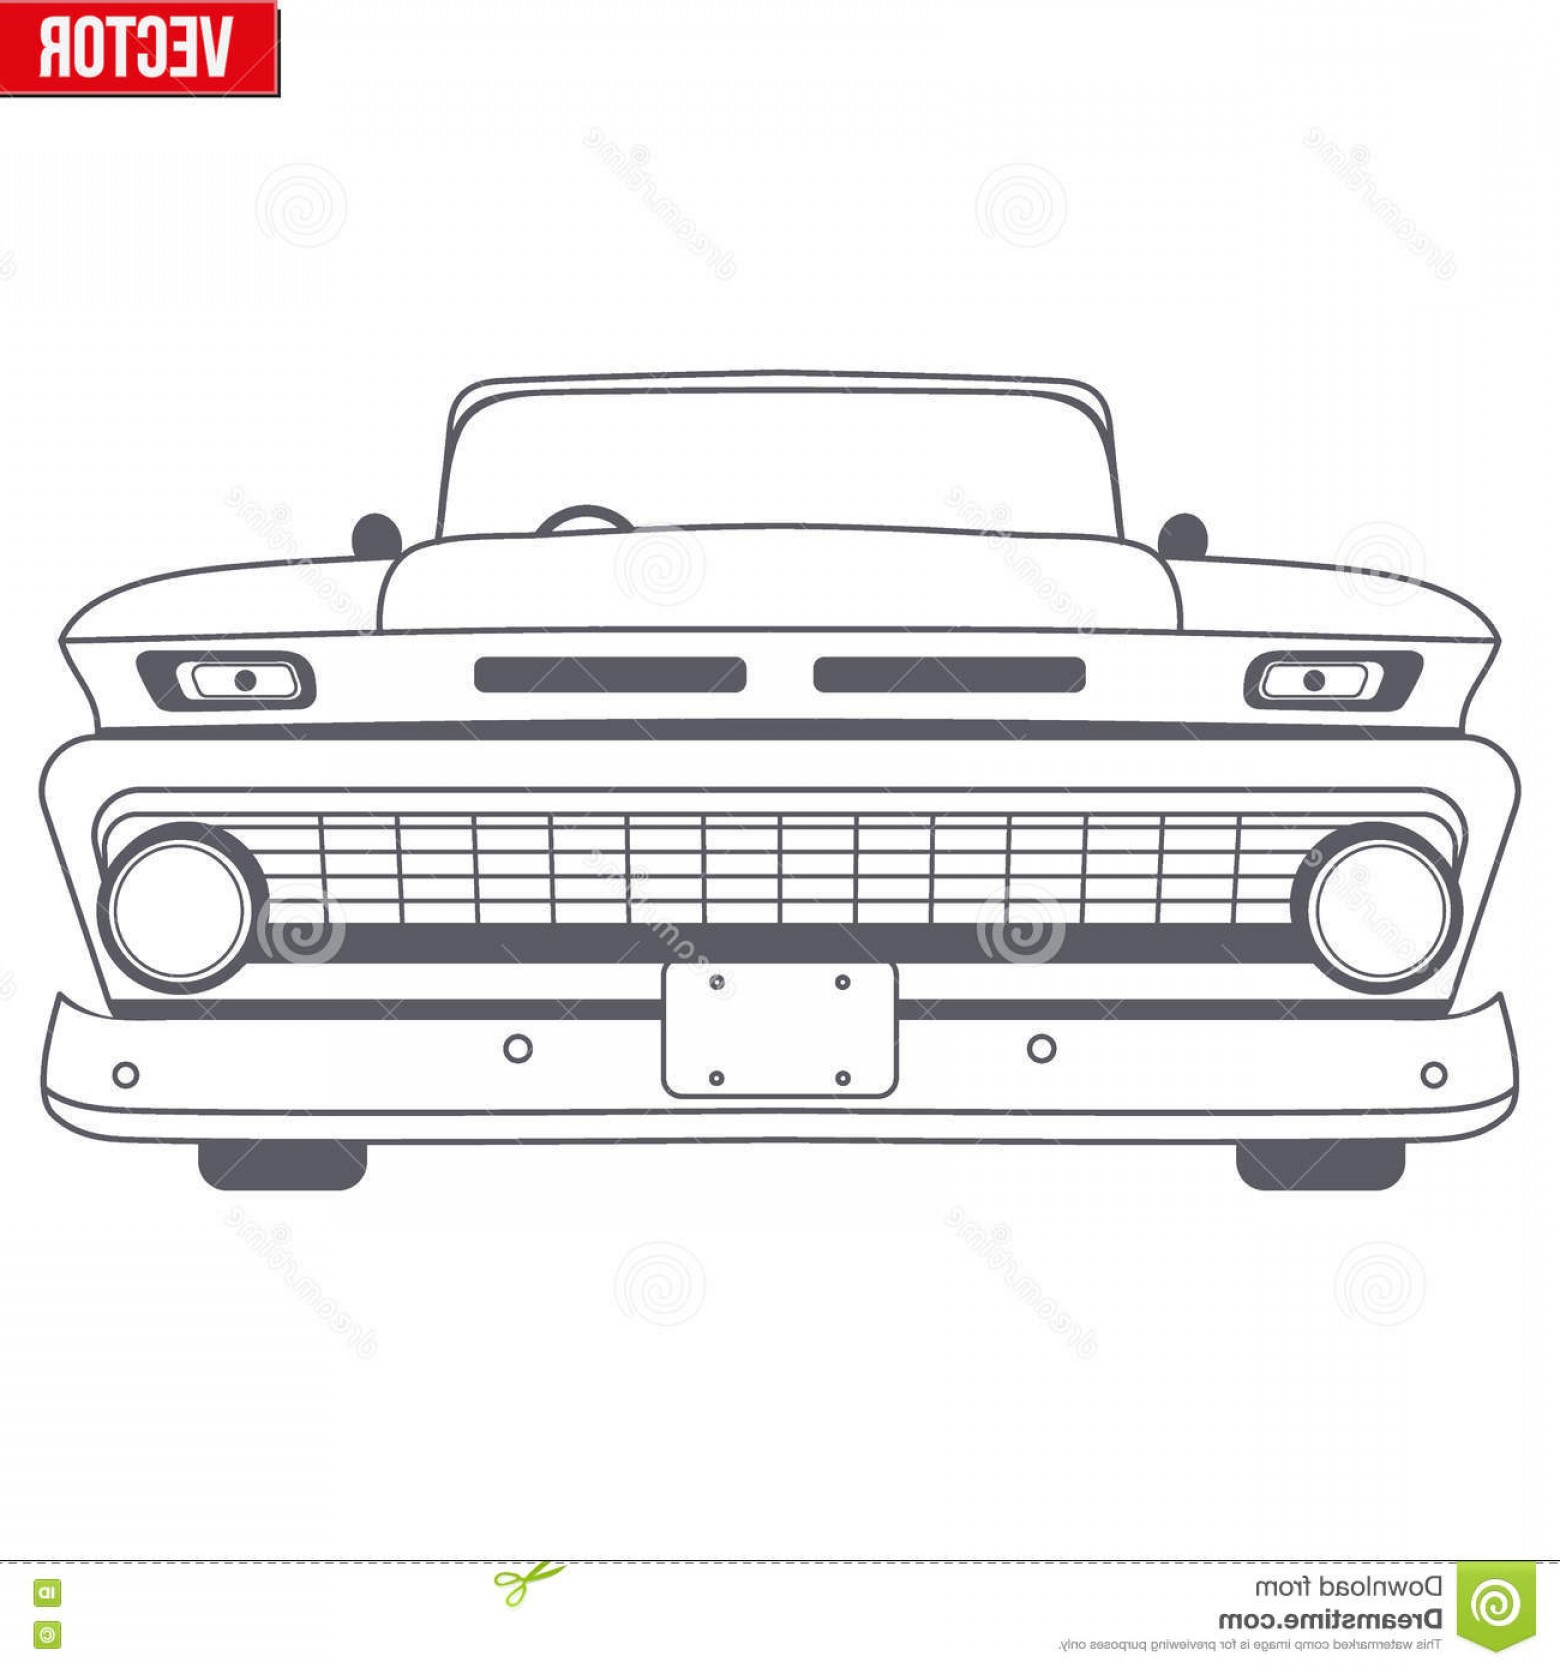 Car Vector Front Elevation: Stock Illustration Muscle Car Vector Symbol Delivery Company Monochrome Design Front View Illustration Isolated Background Image